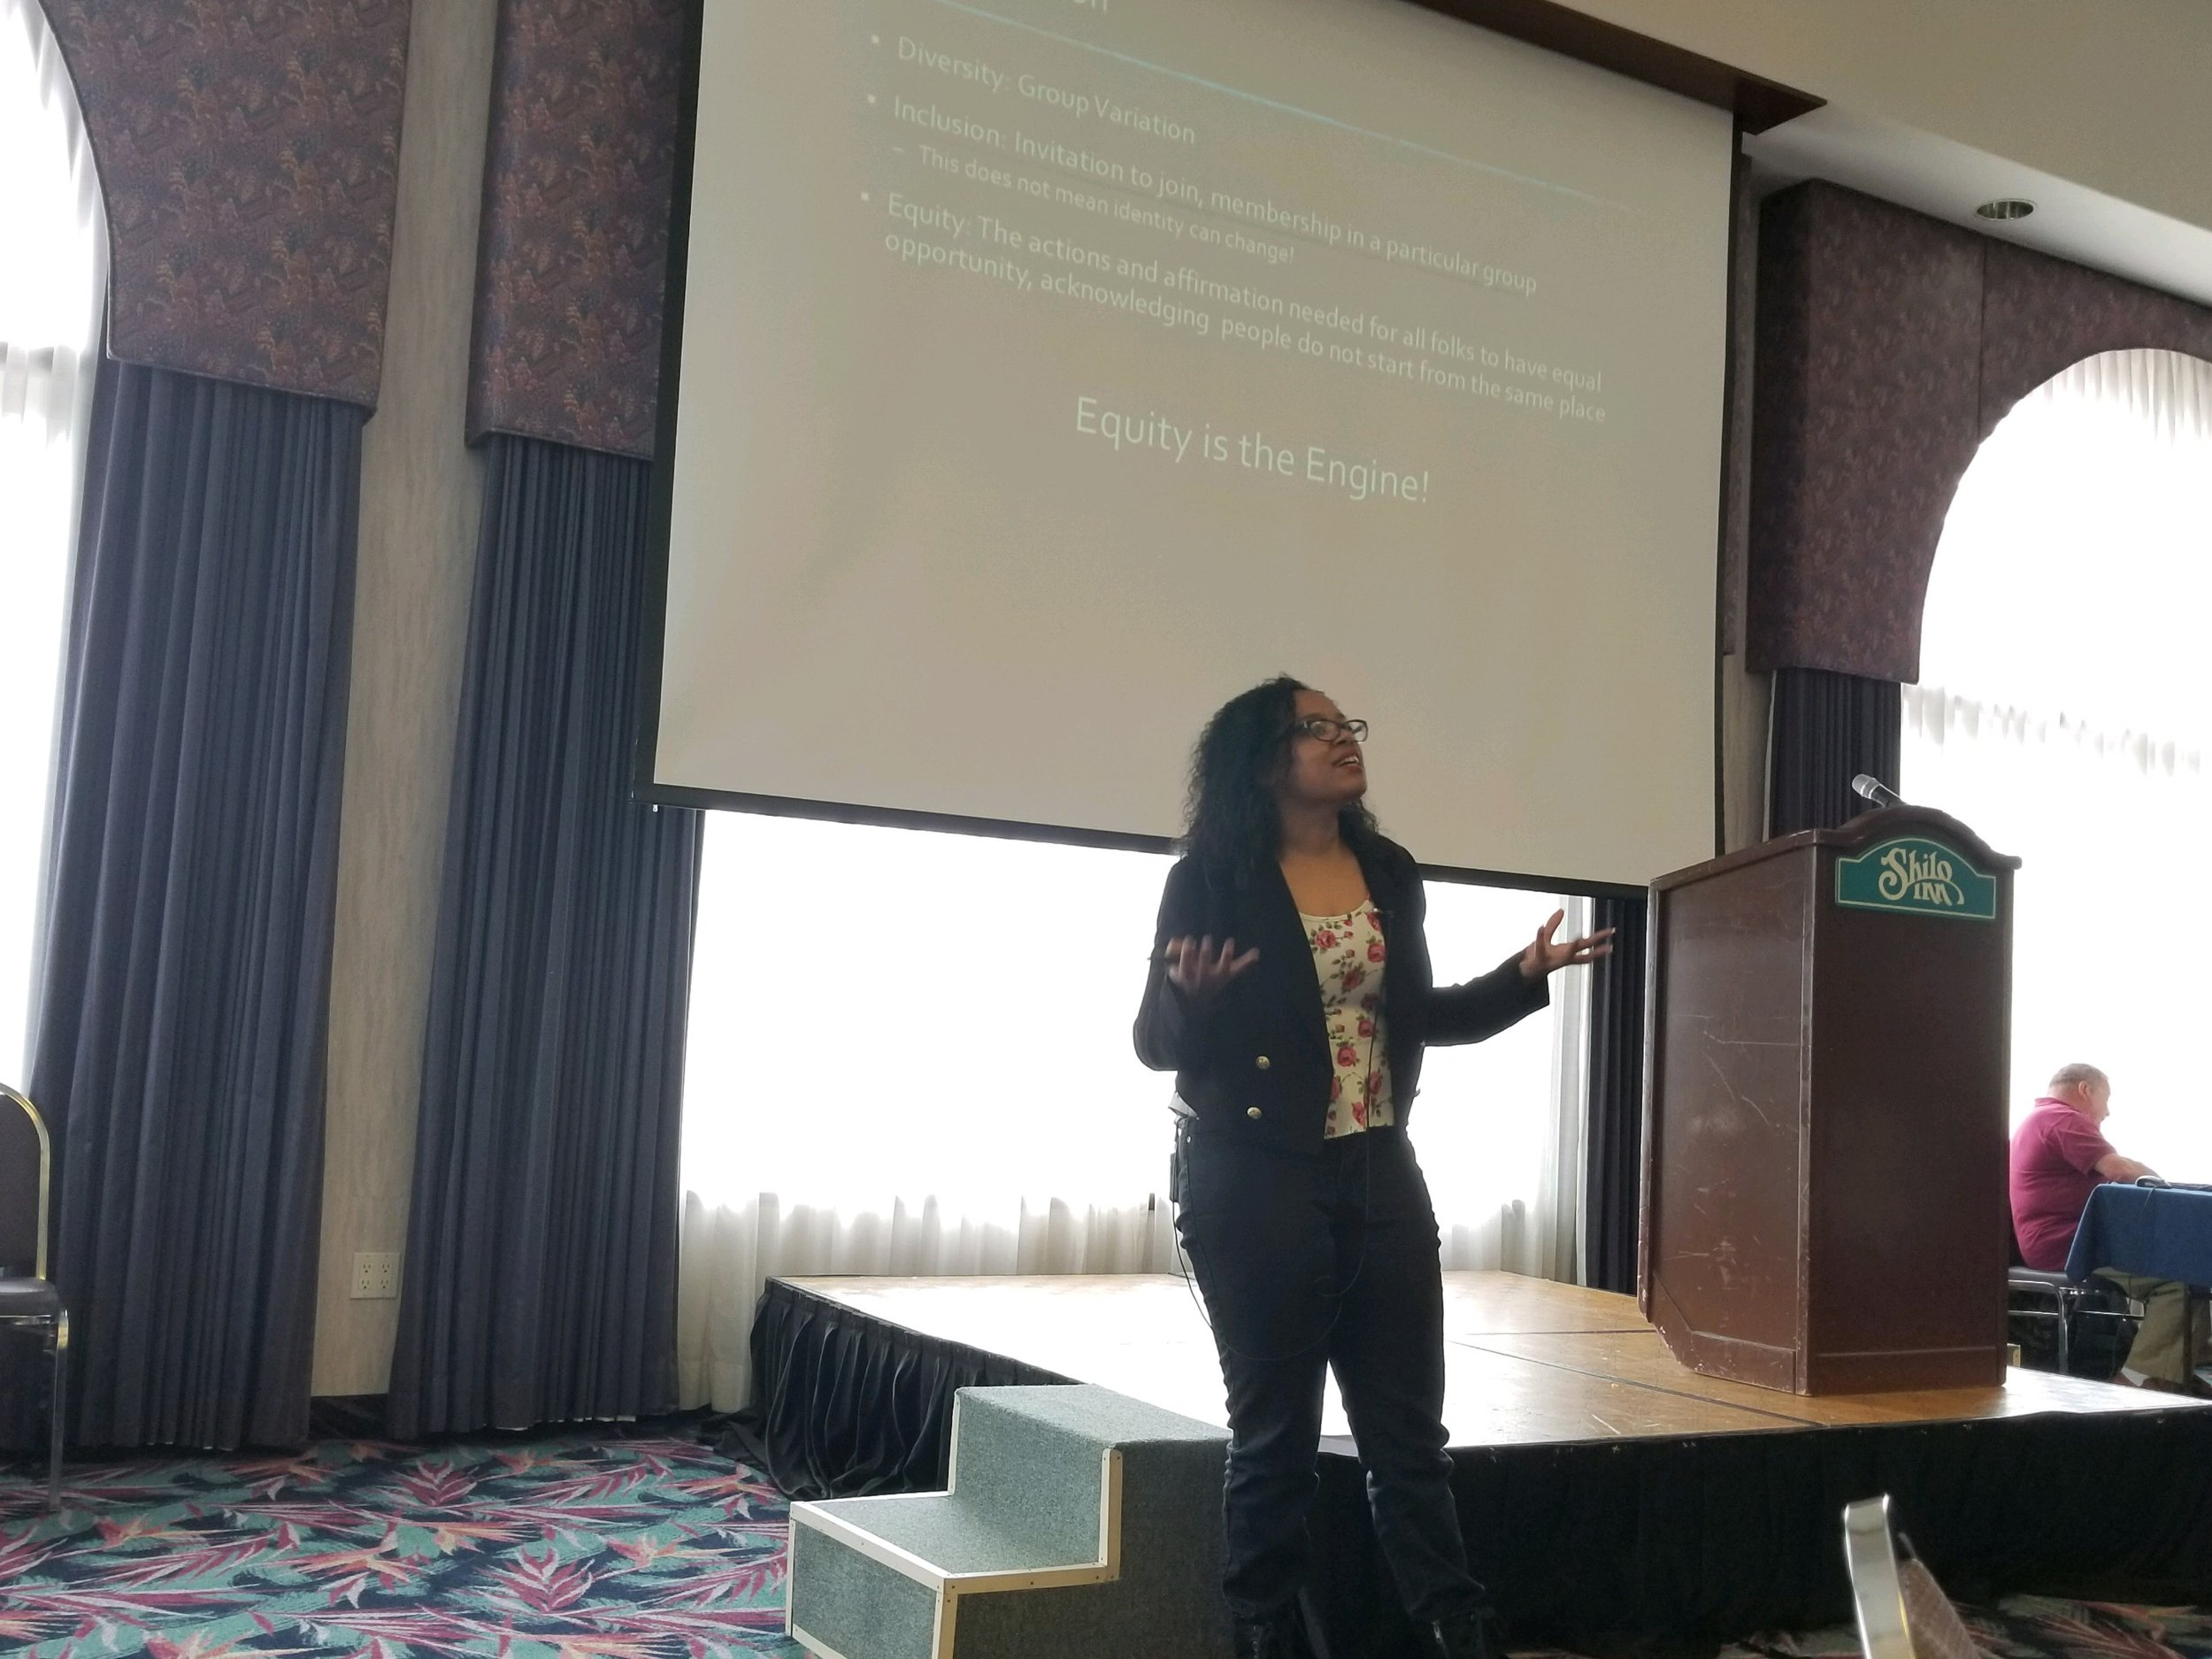 """Photo Description: ChrisTiana ObeySumner standing in front of a large screen, arms outstretched, giving a training. The screen says """"Equity is the Engine."""""""